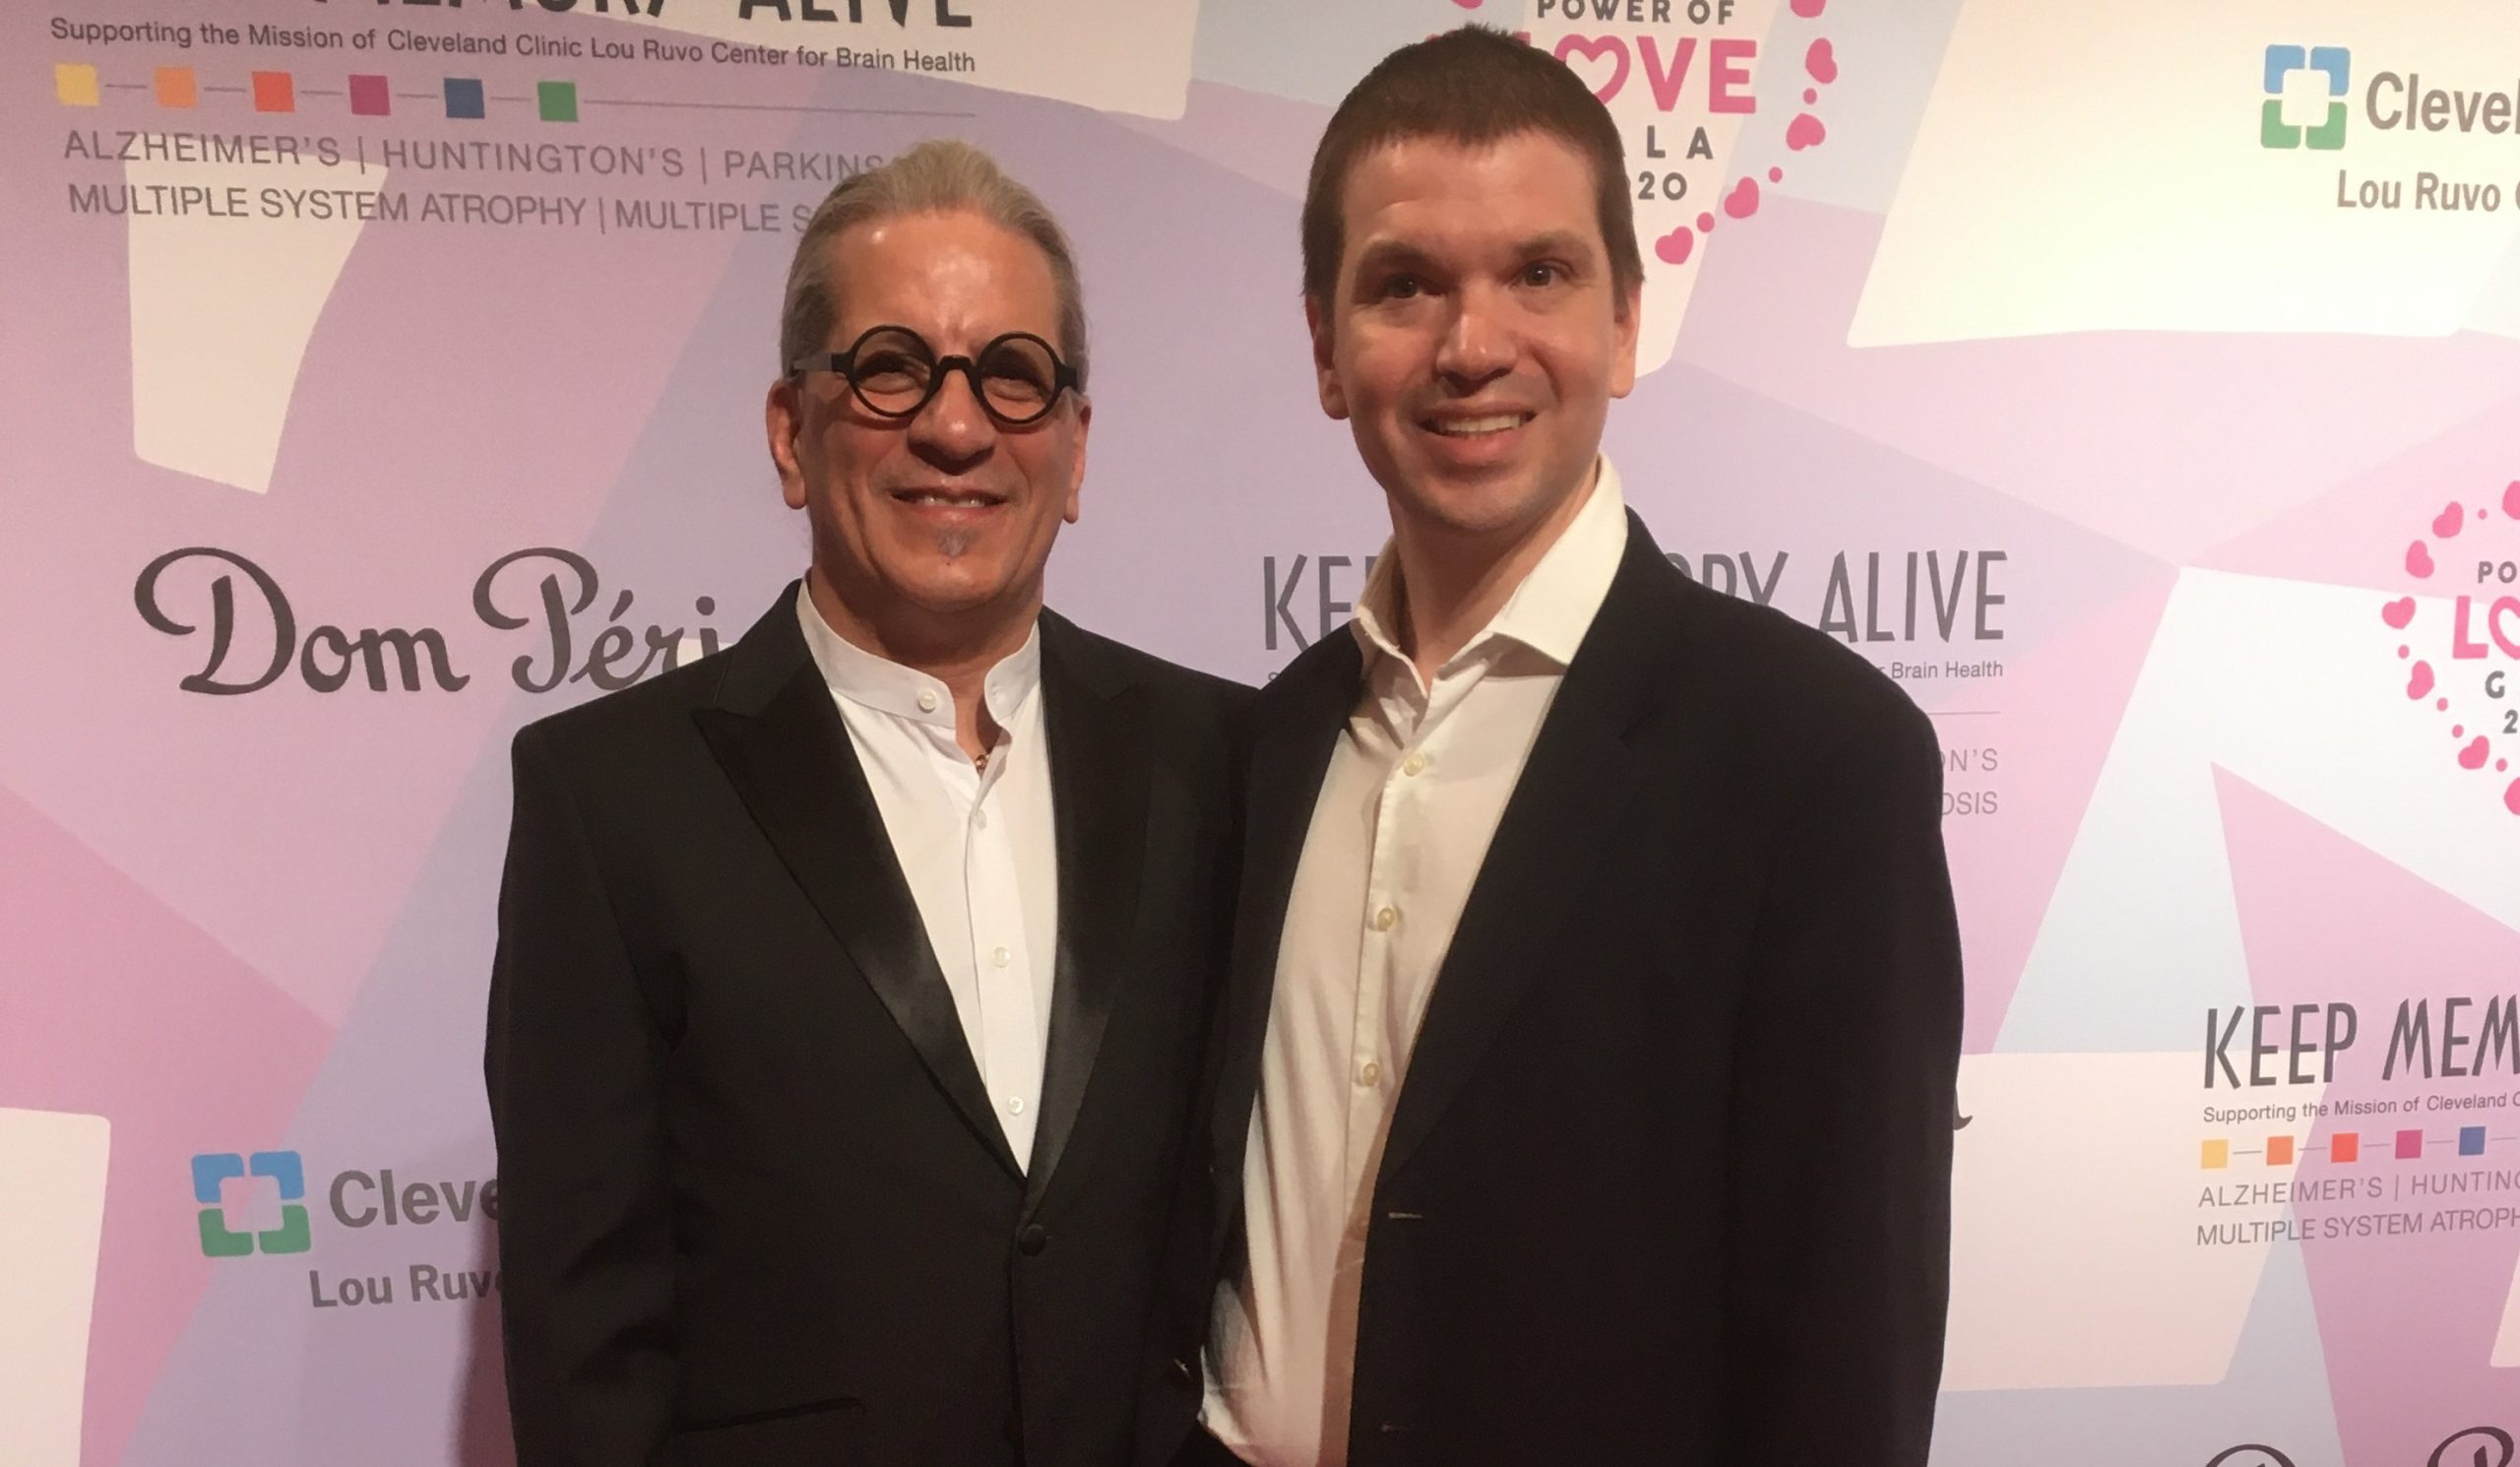 Chris Yandek, Steven Lagos, Lagos Jewelry, Power of Love Gala 2020, Steven Lagos Collection, Keep Memory Alive 2020, Jeweler Steven Lagos, Steven Lagos Jewelry, Lagos Collection 2020, Steven Lagos Power of Love Gala